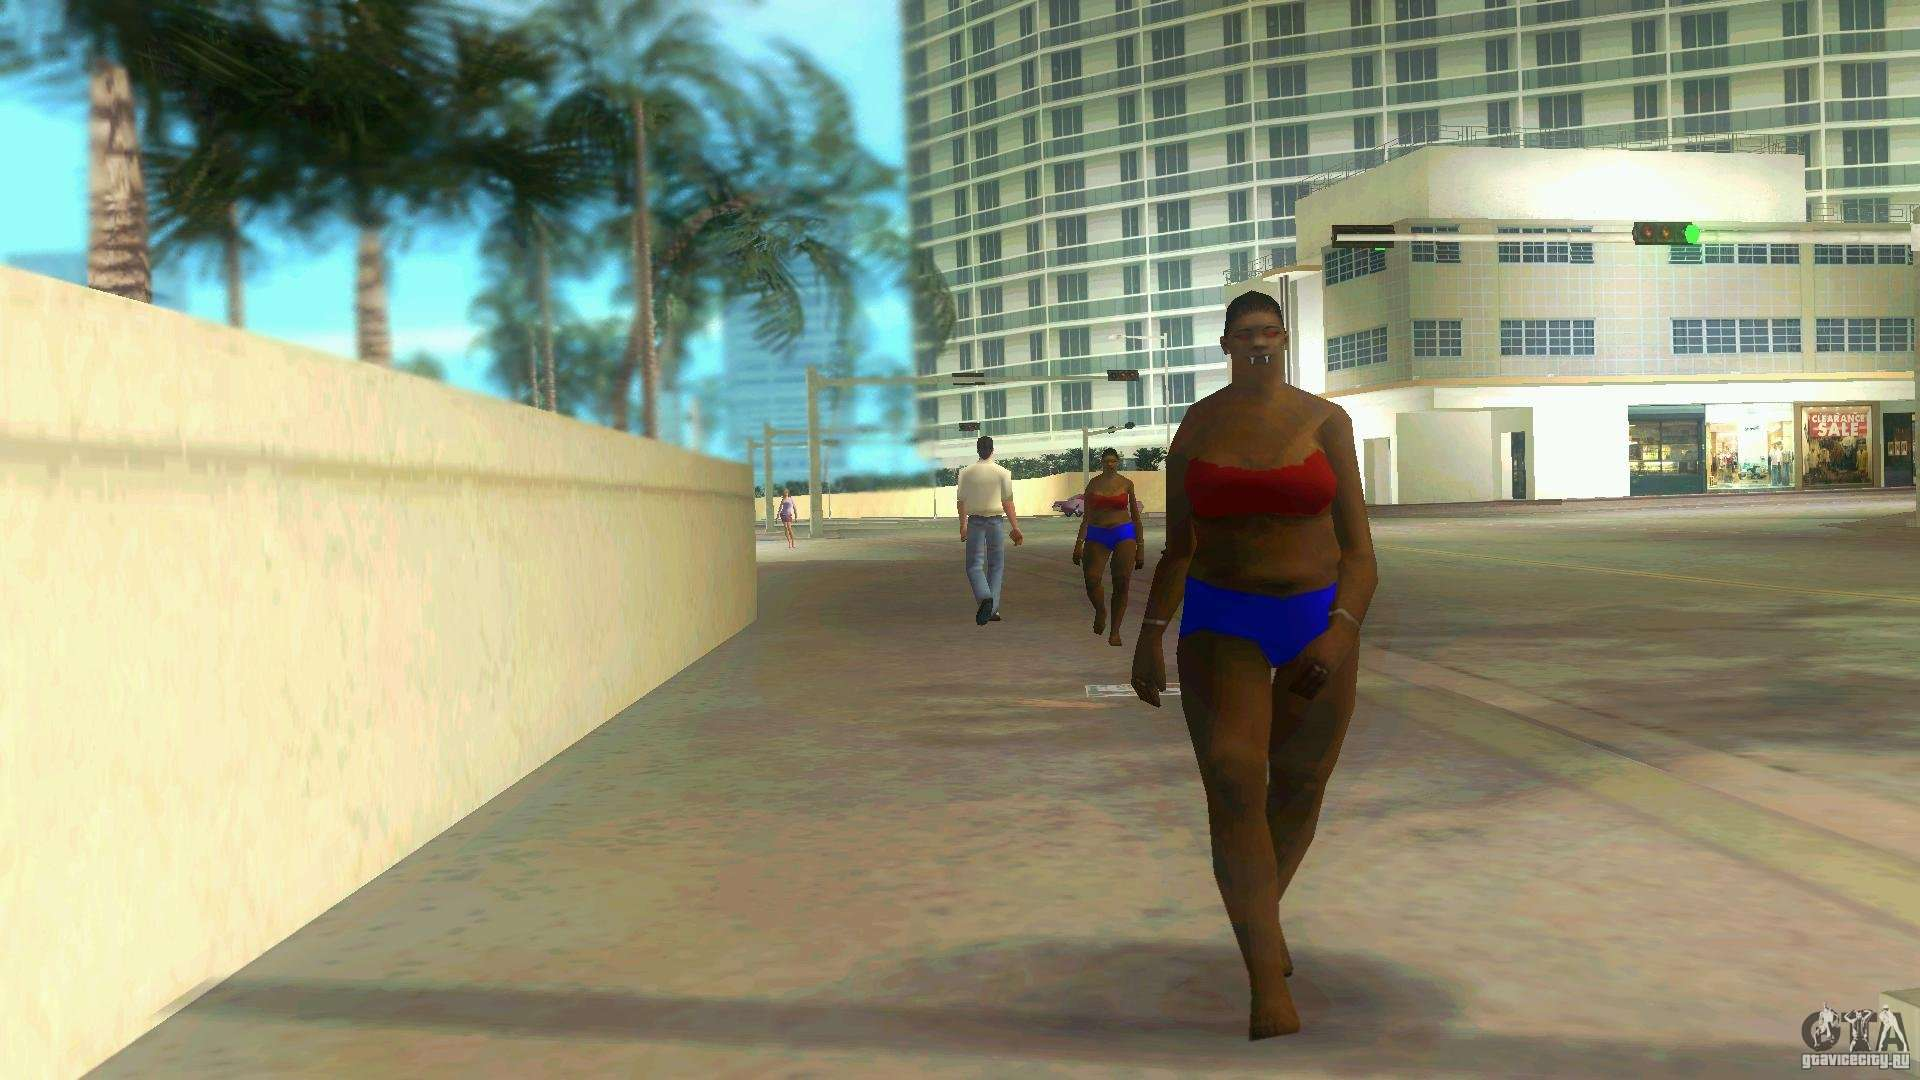 Gta vice city fucking bithc mod naked scenes